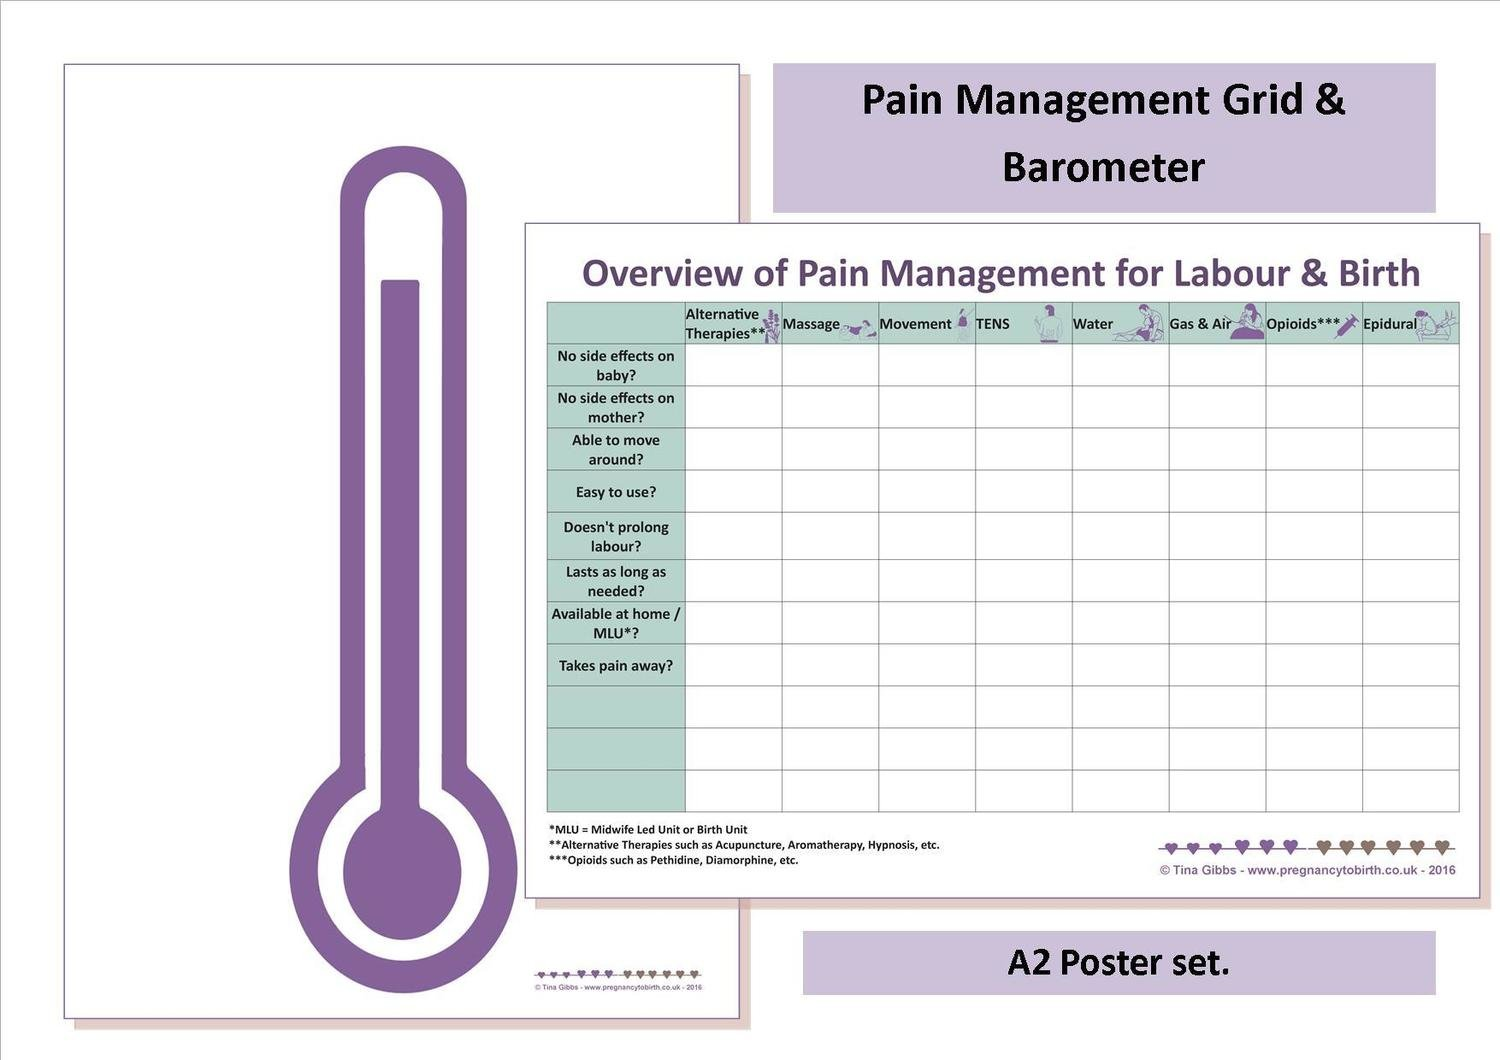 Pain Management Grid & Clear Barometer - A2 poster set